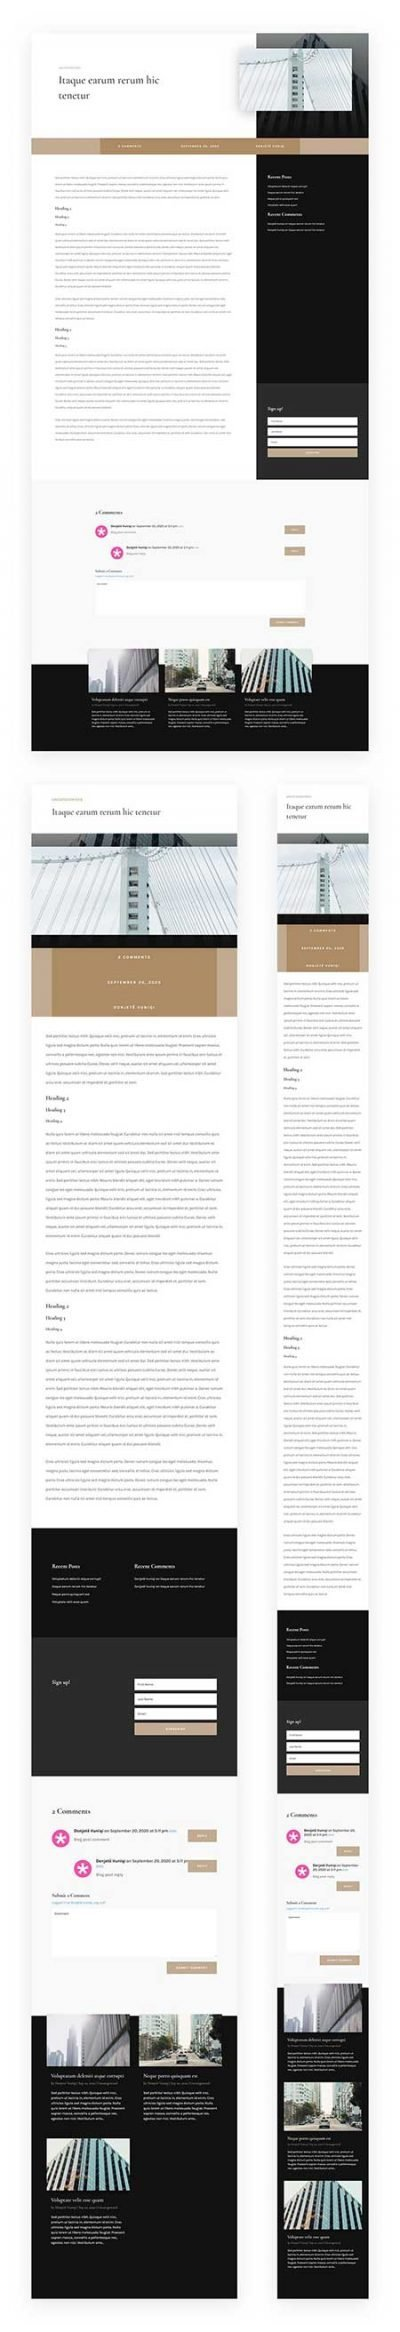 Divi blog post for architects website